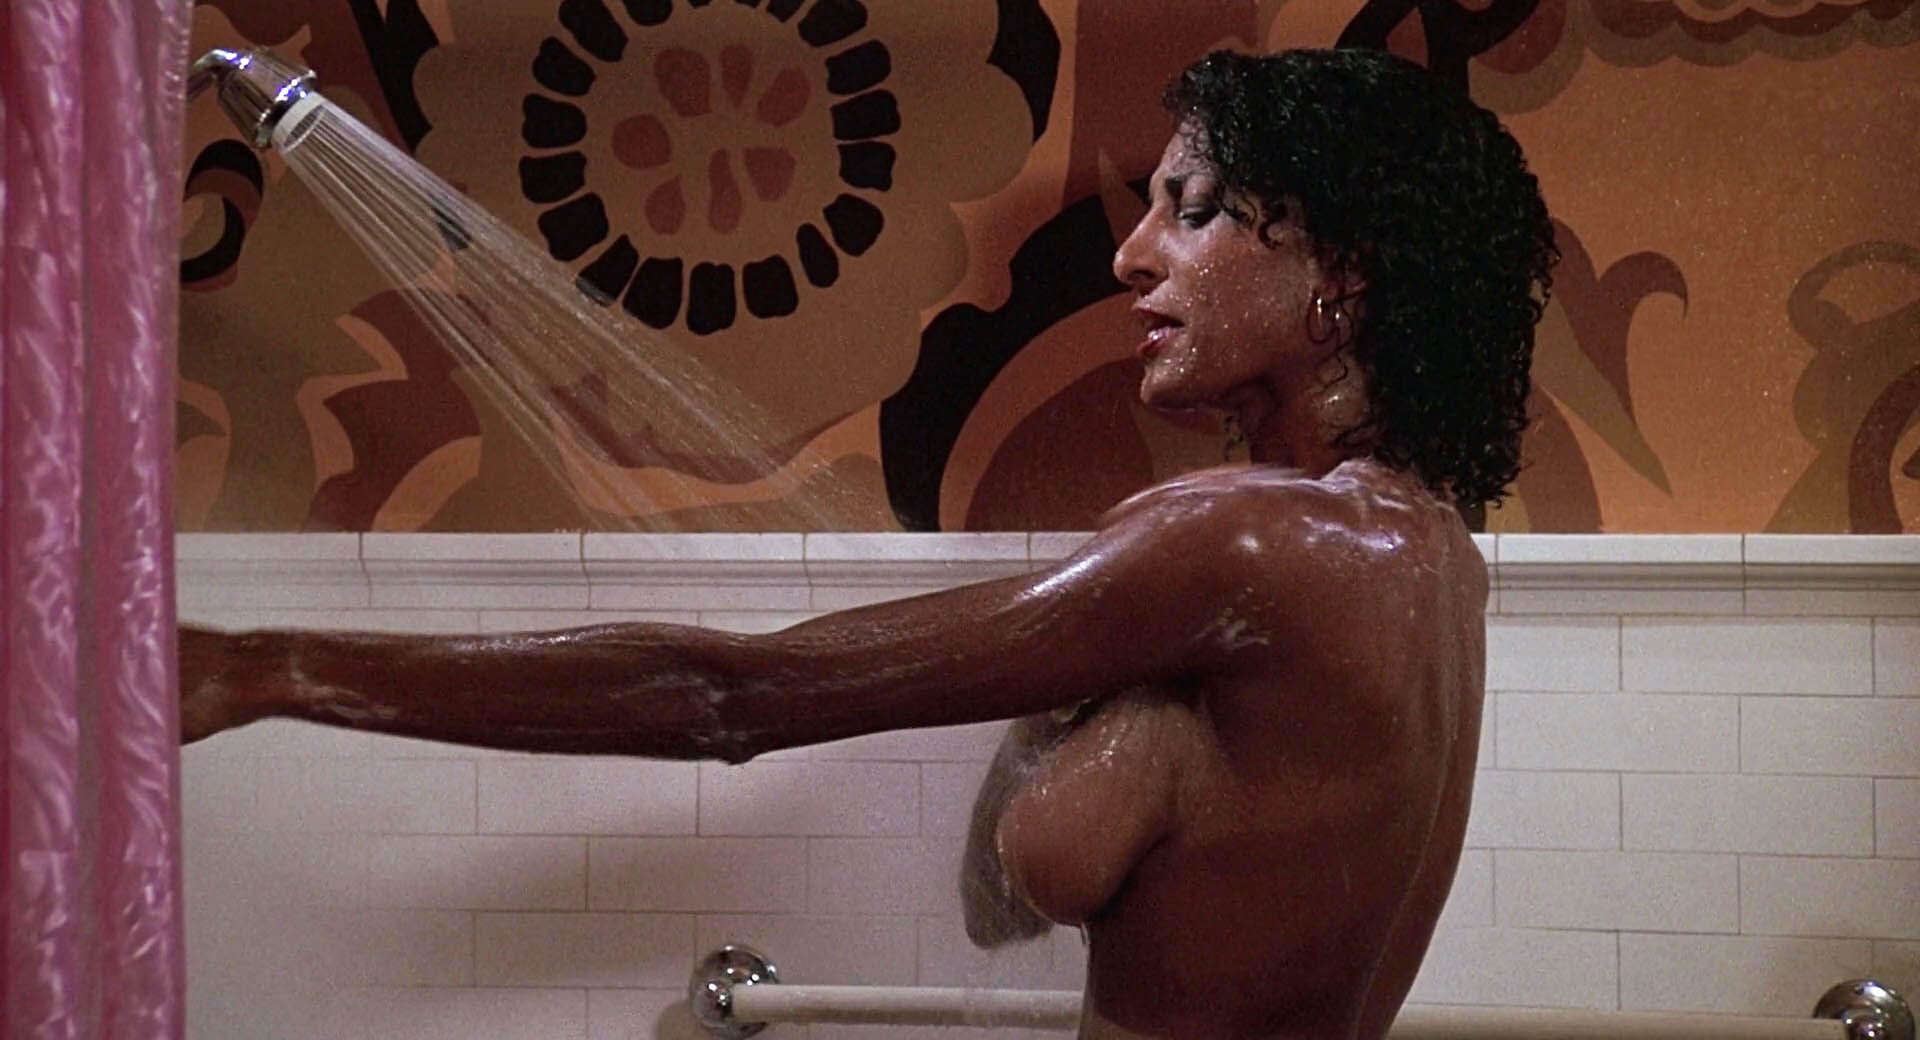 Pam grier nude movie scenes, famous football players nude